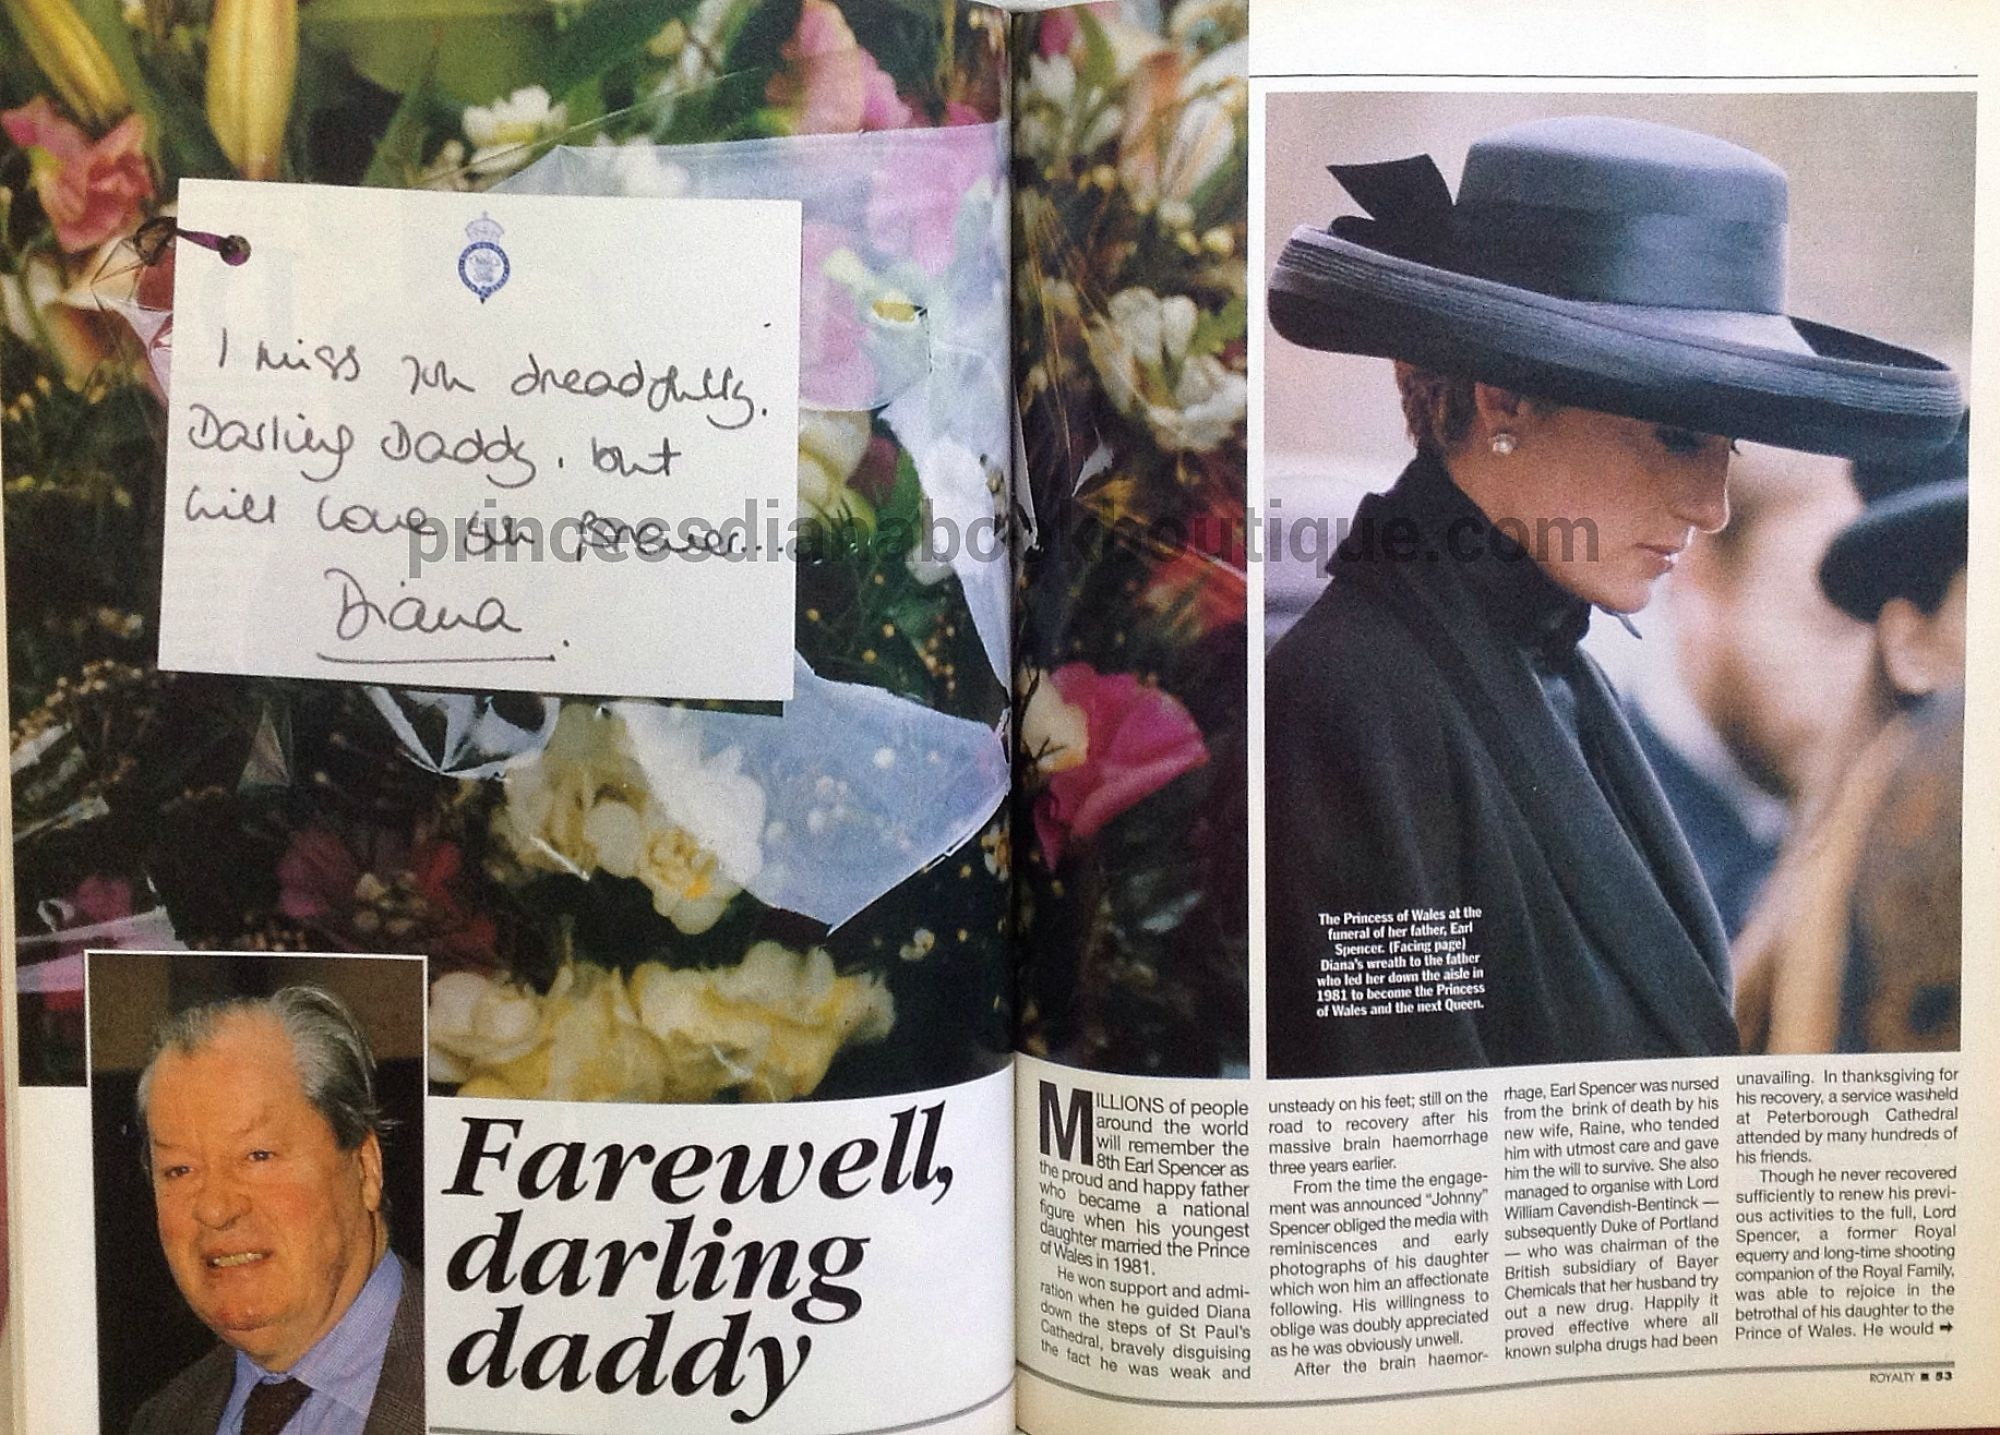 Elizabeth Ii Last Name 1 April 1992 Farewell Darling Daddy Princess Diana And